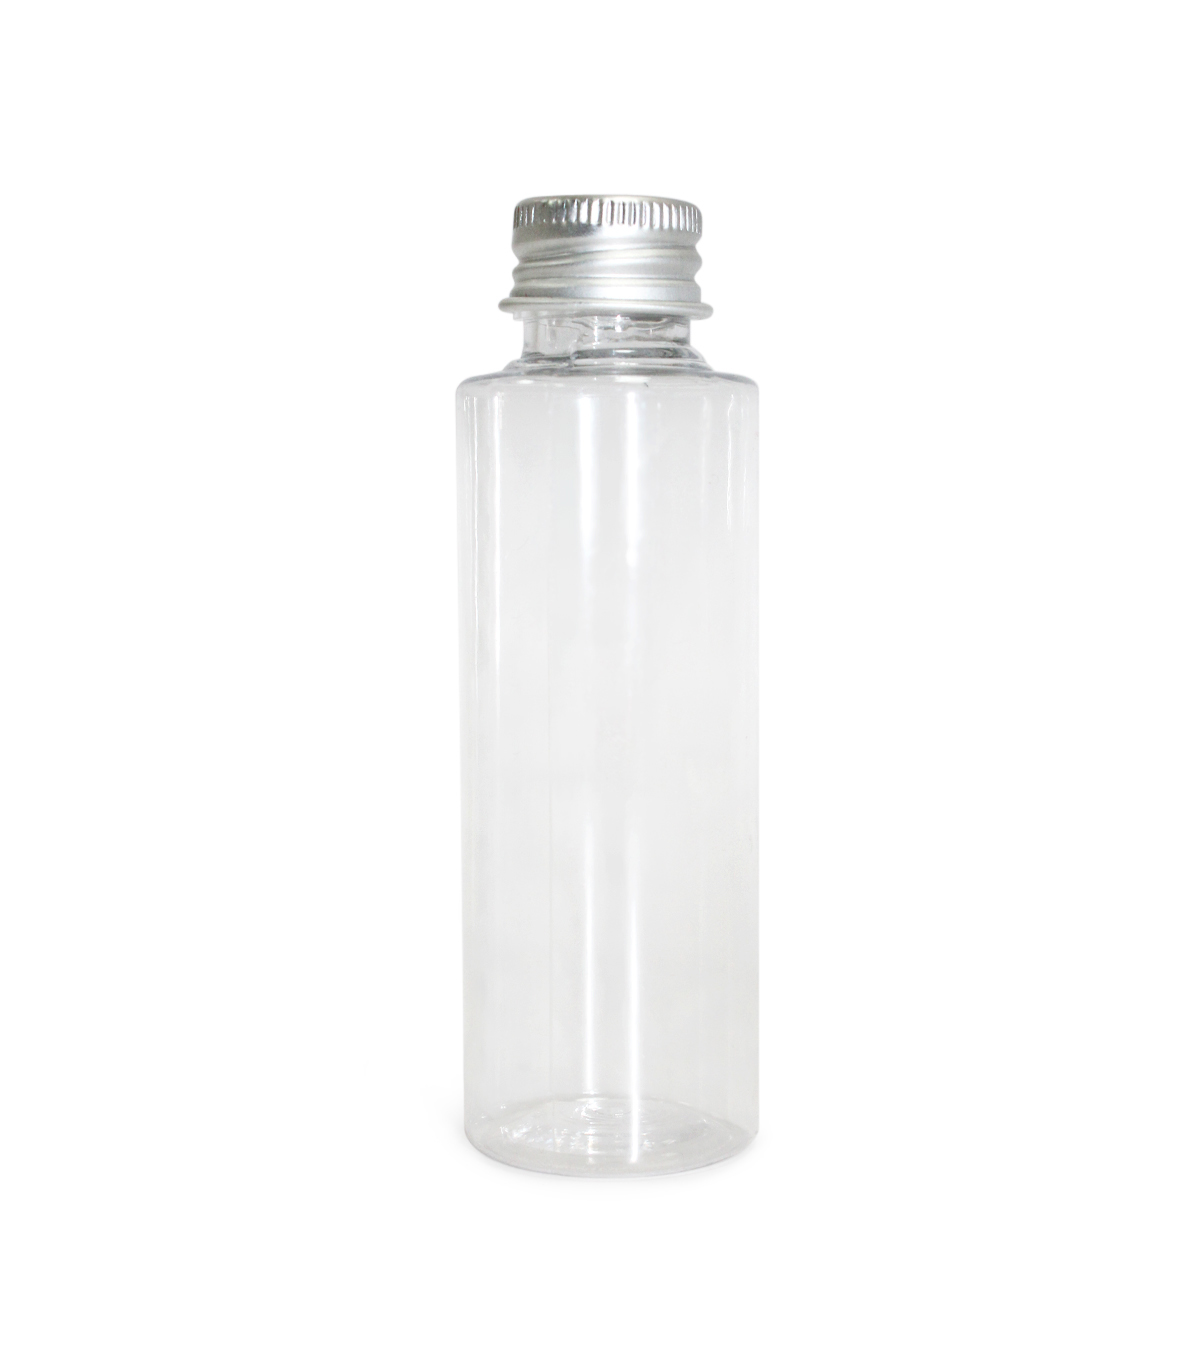 Fab Lab Plastic Vials with Lids 6/Pkg